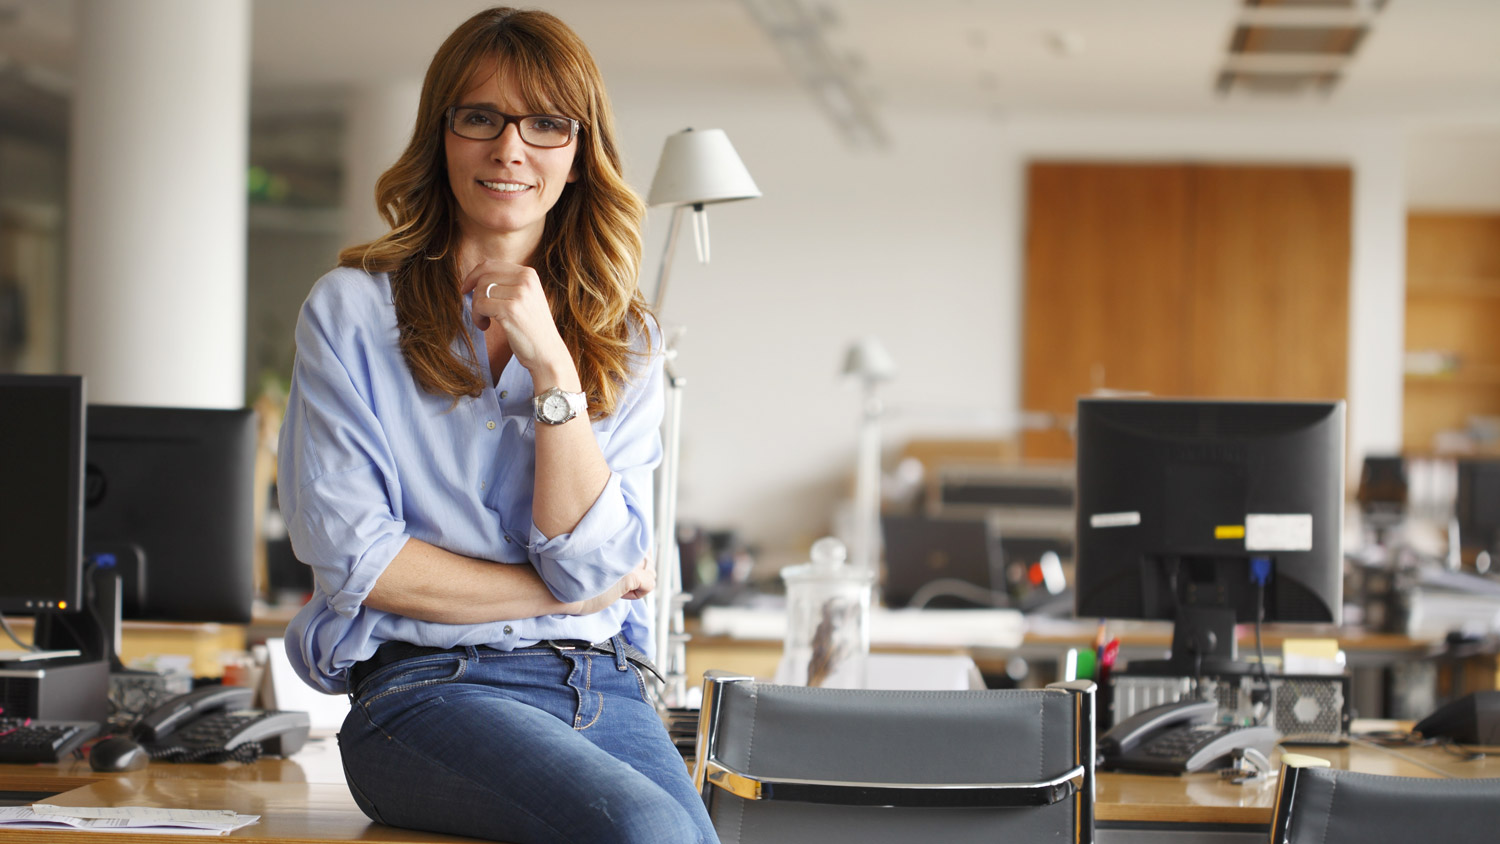 7 Companies Committed to Having Women at the Top